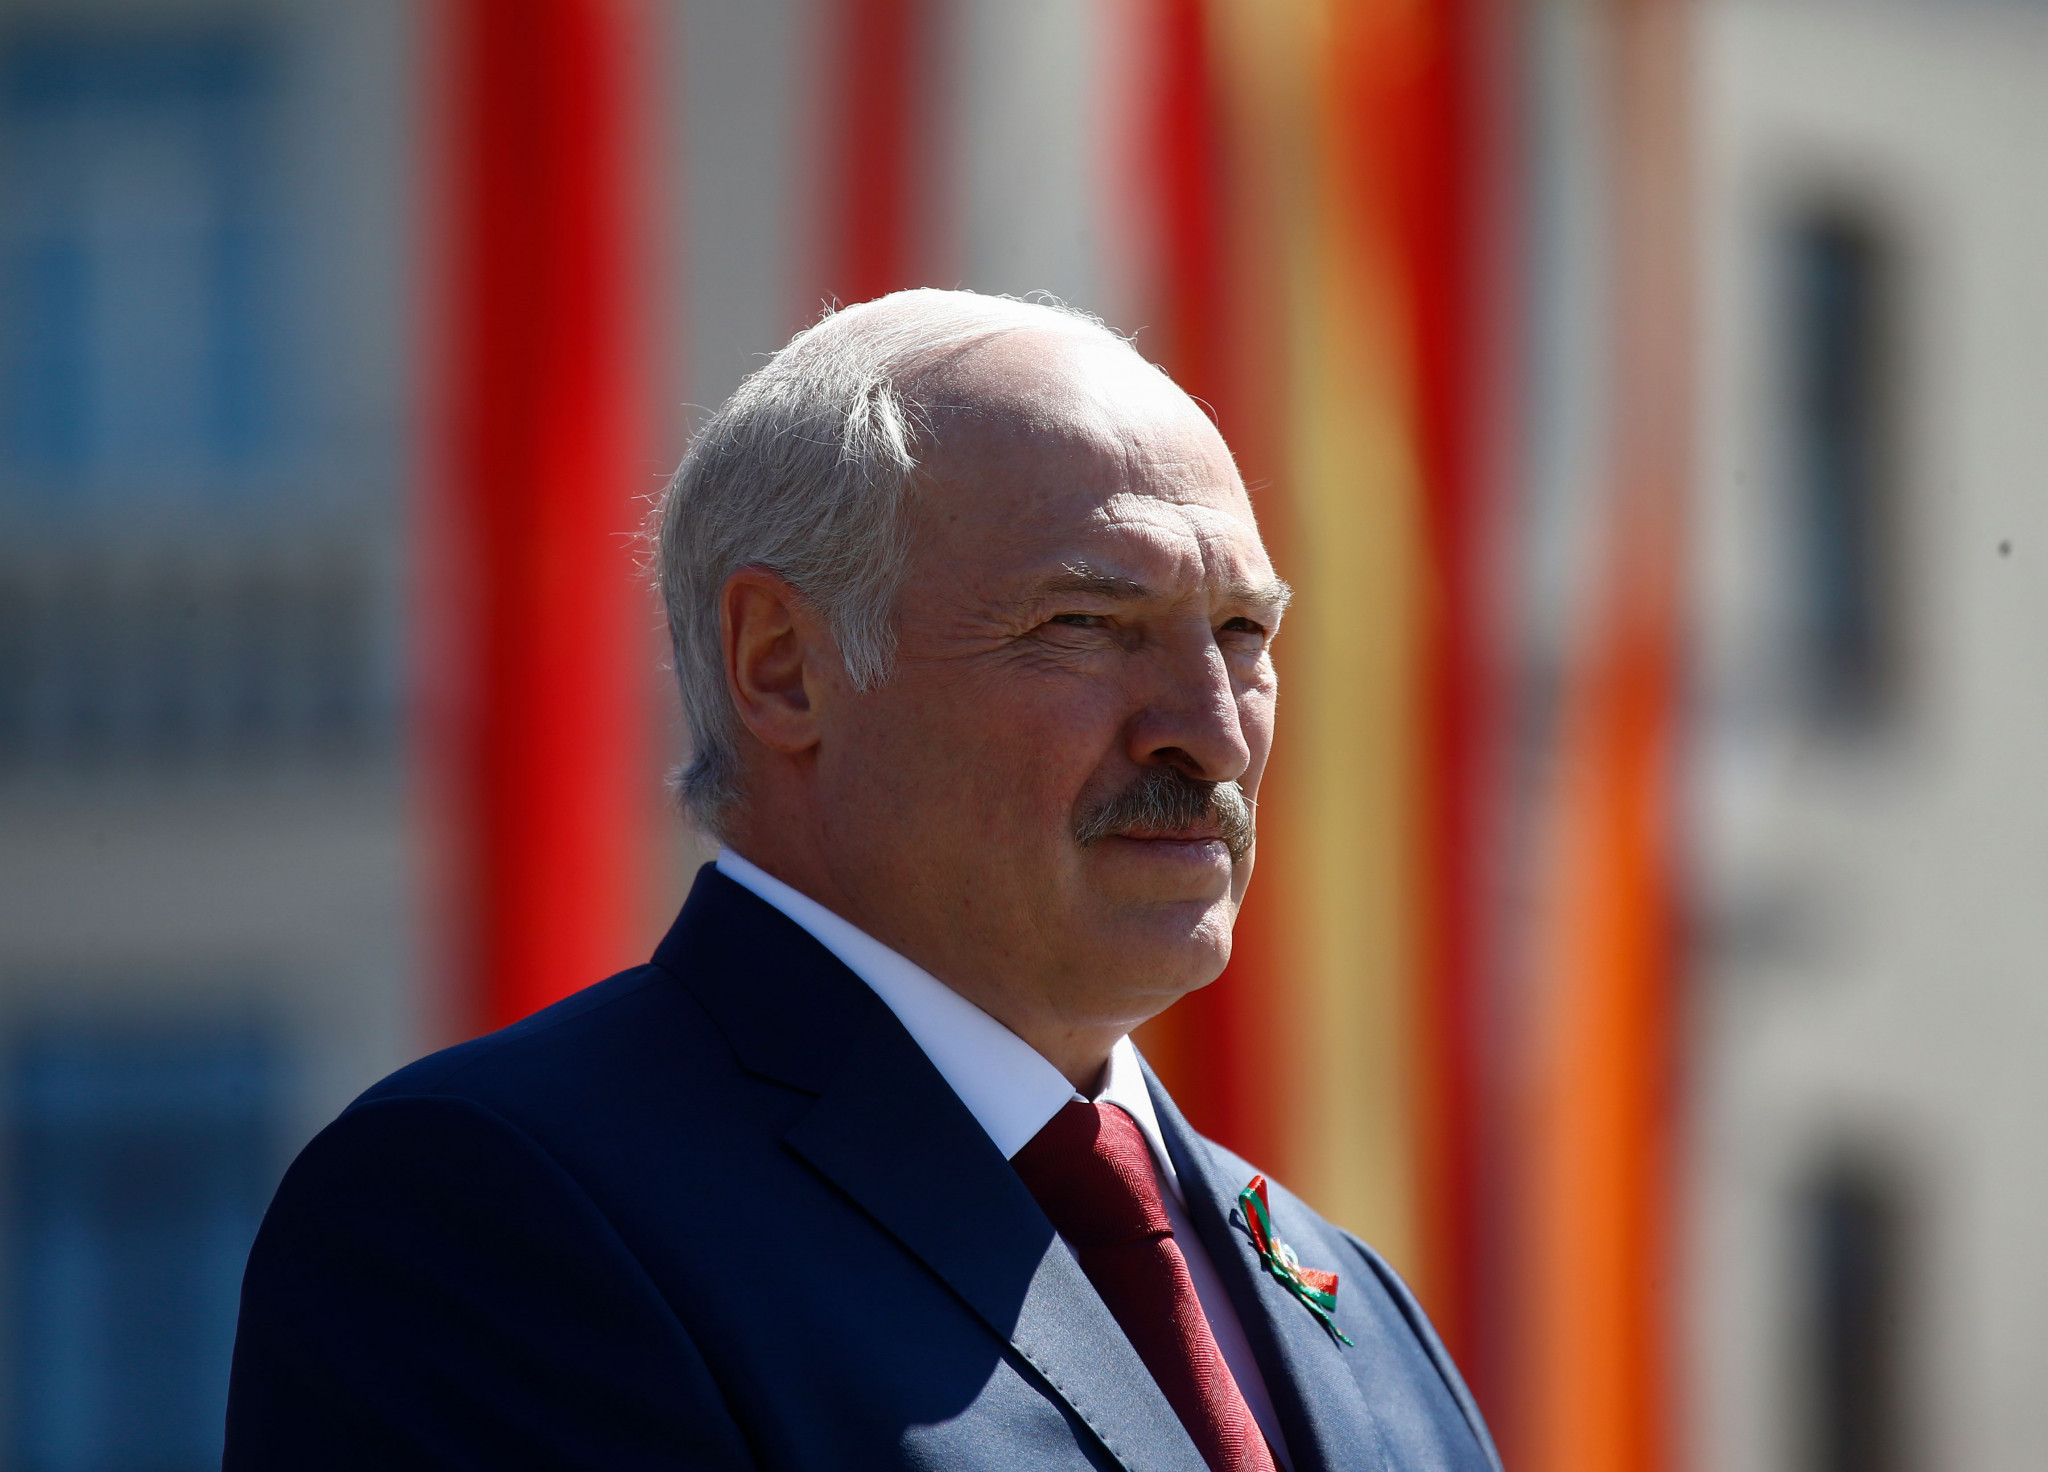 Alexander Lukashenko has signed a decree against doping in sport ©Getty Images